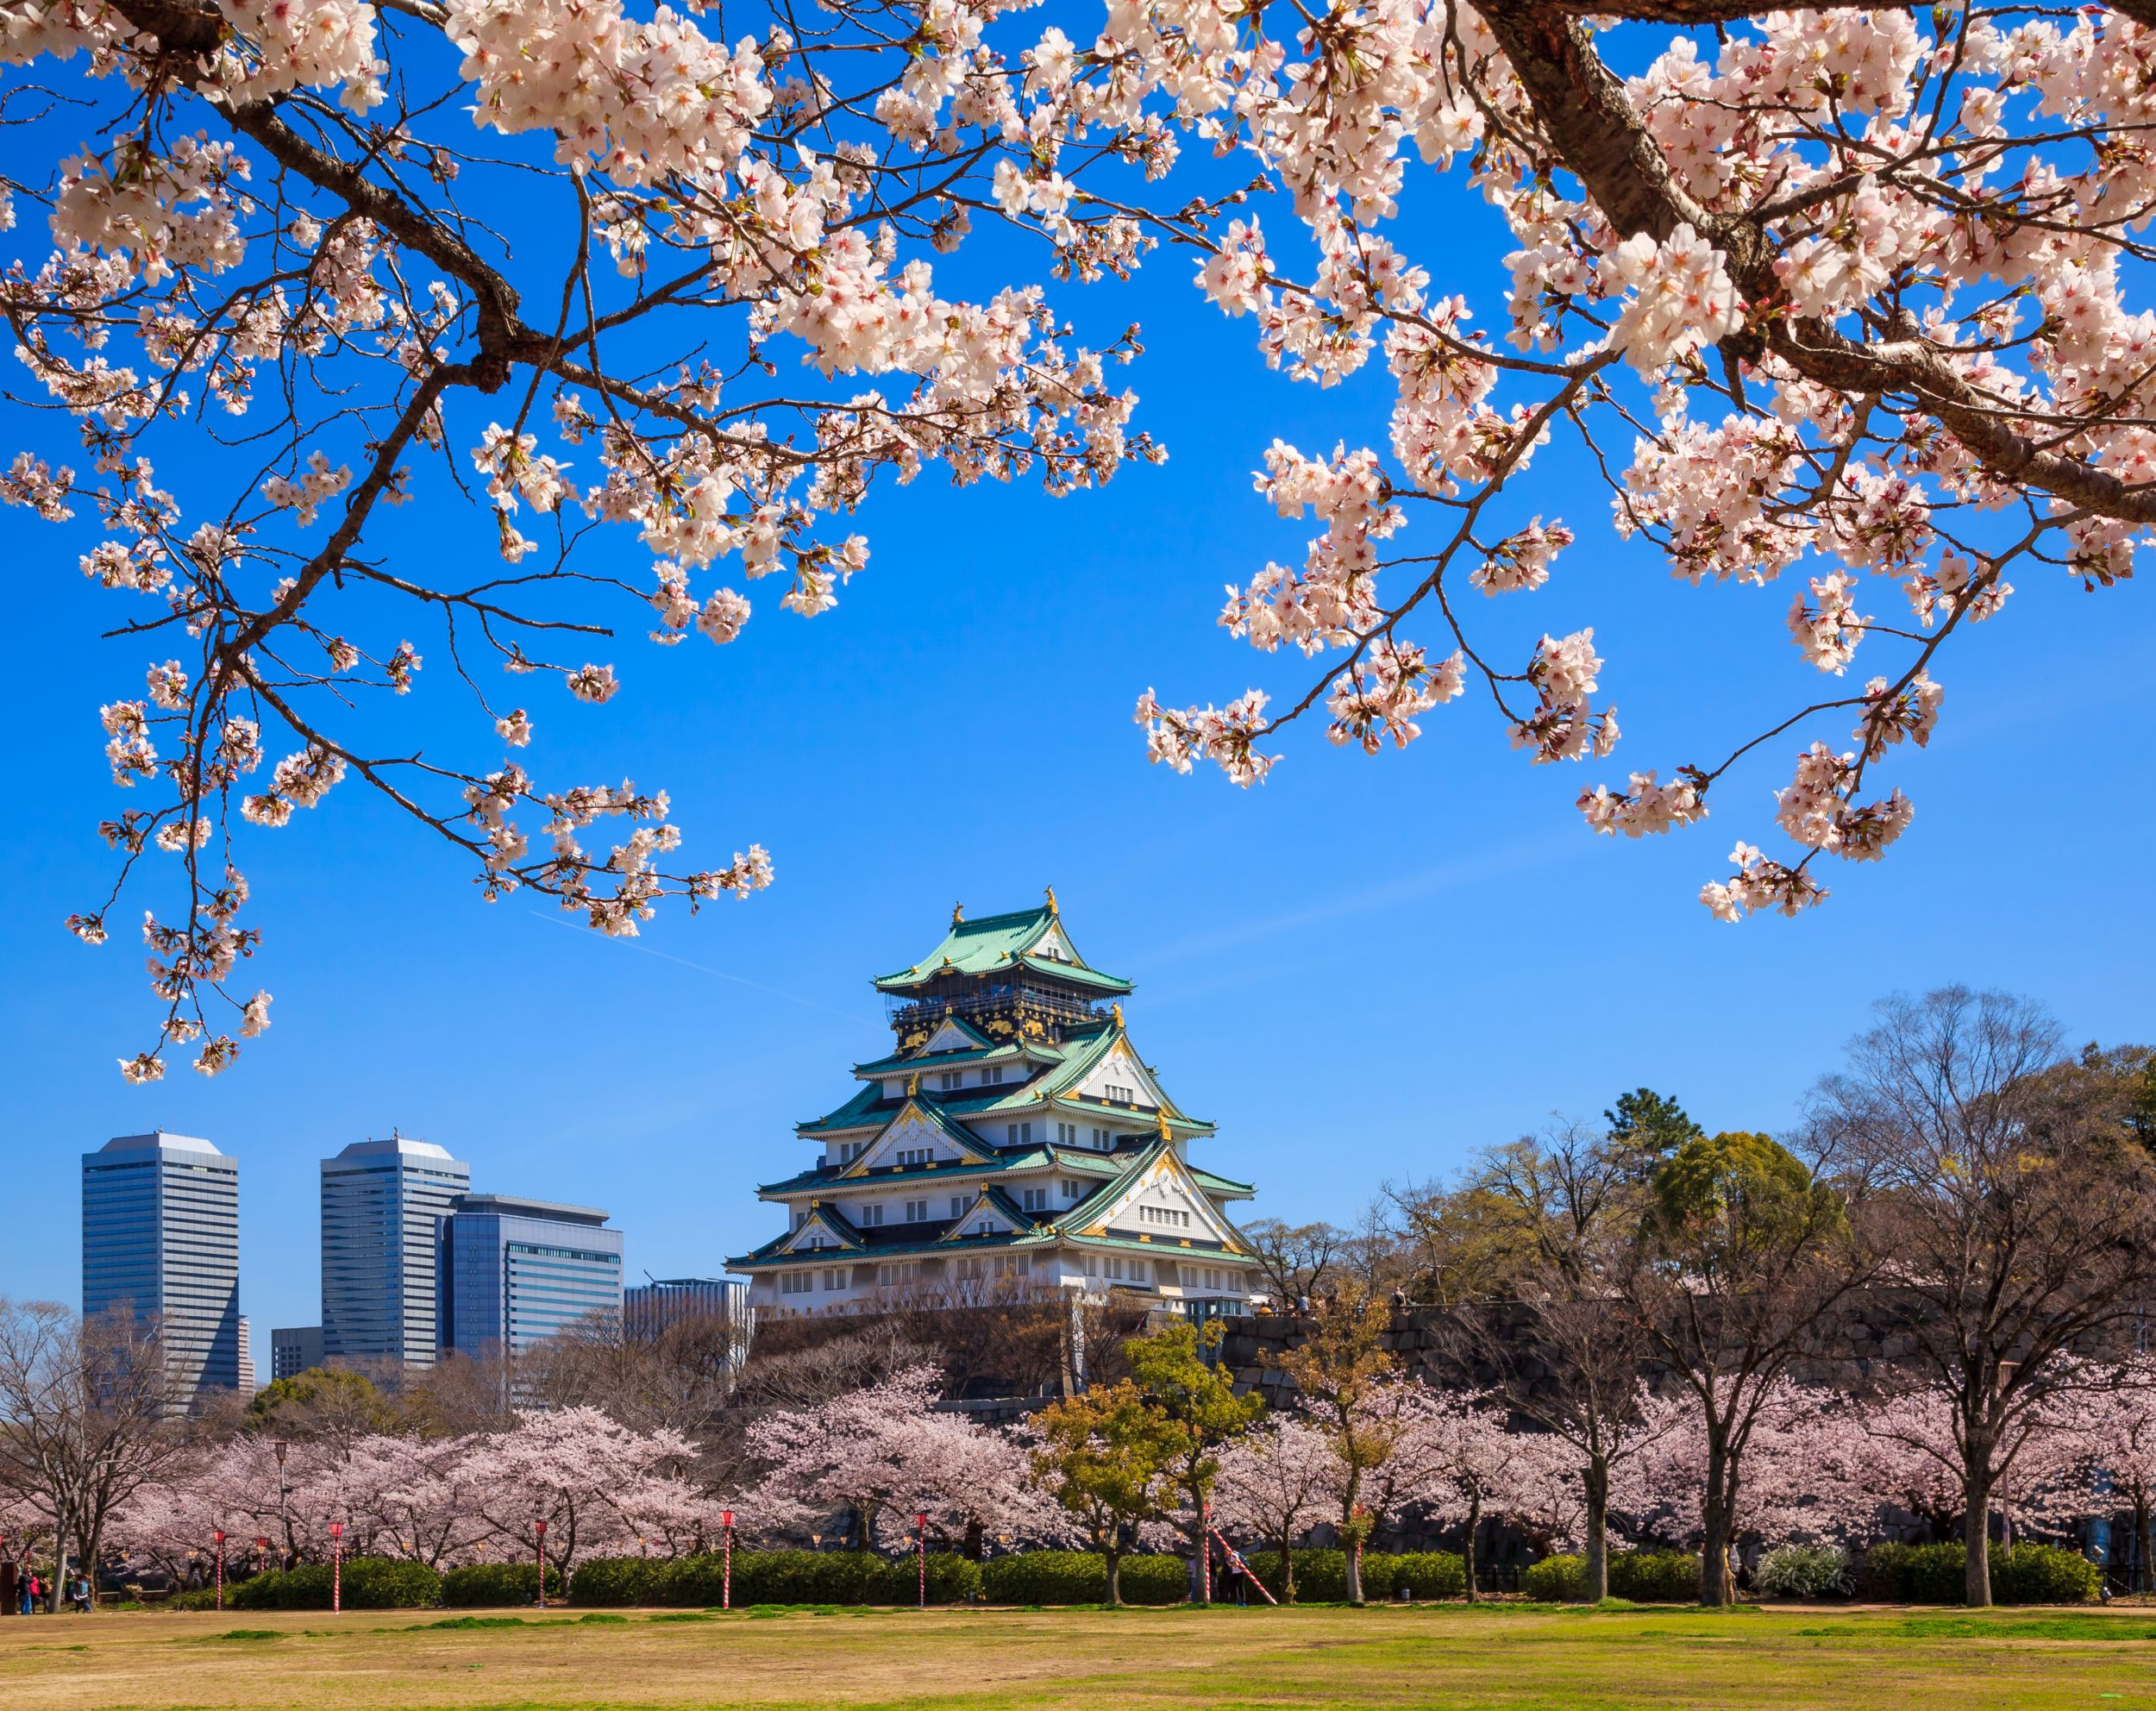 Osaka castle in cherry blossom season (Thinkstock/PA)